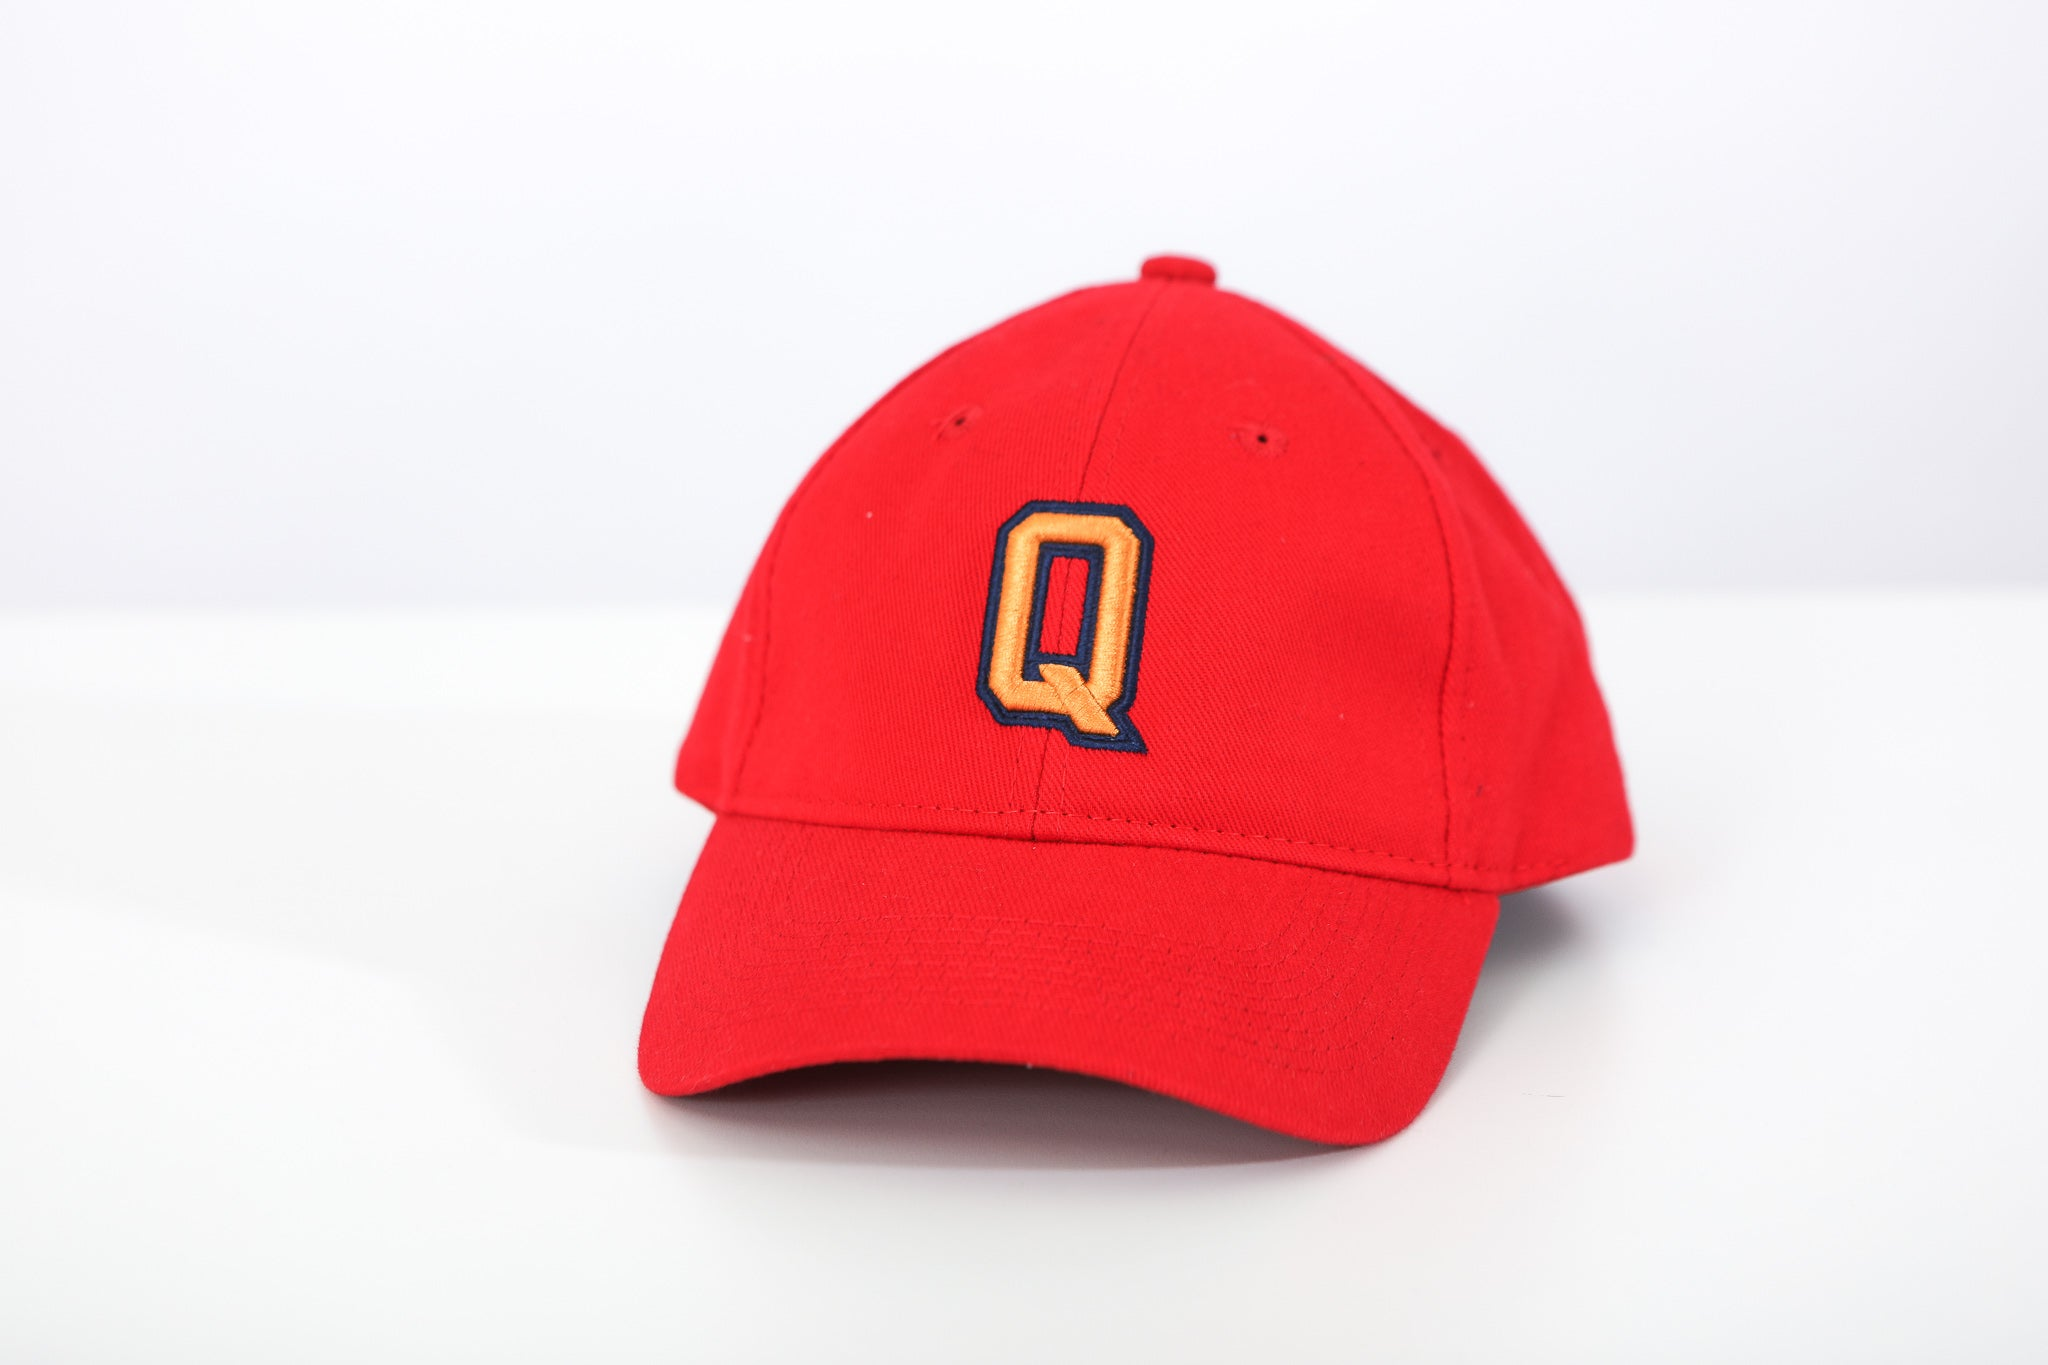 Front image of red hat with yellow Q logo